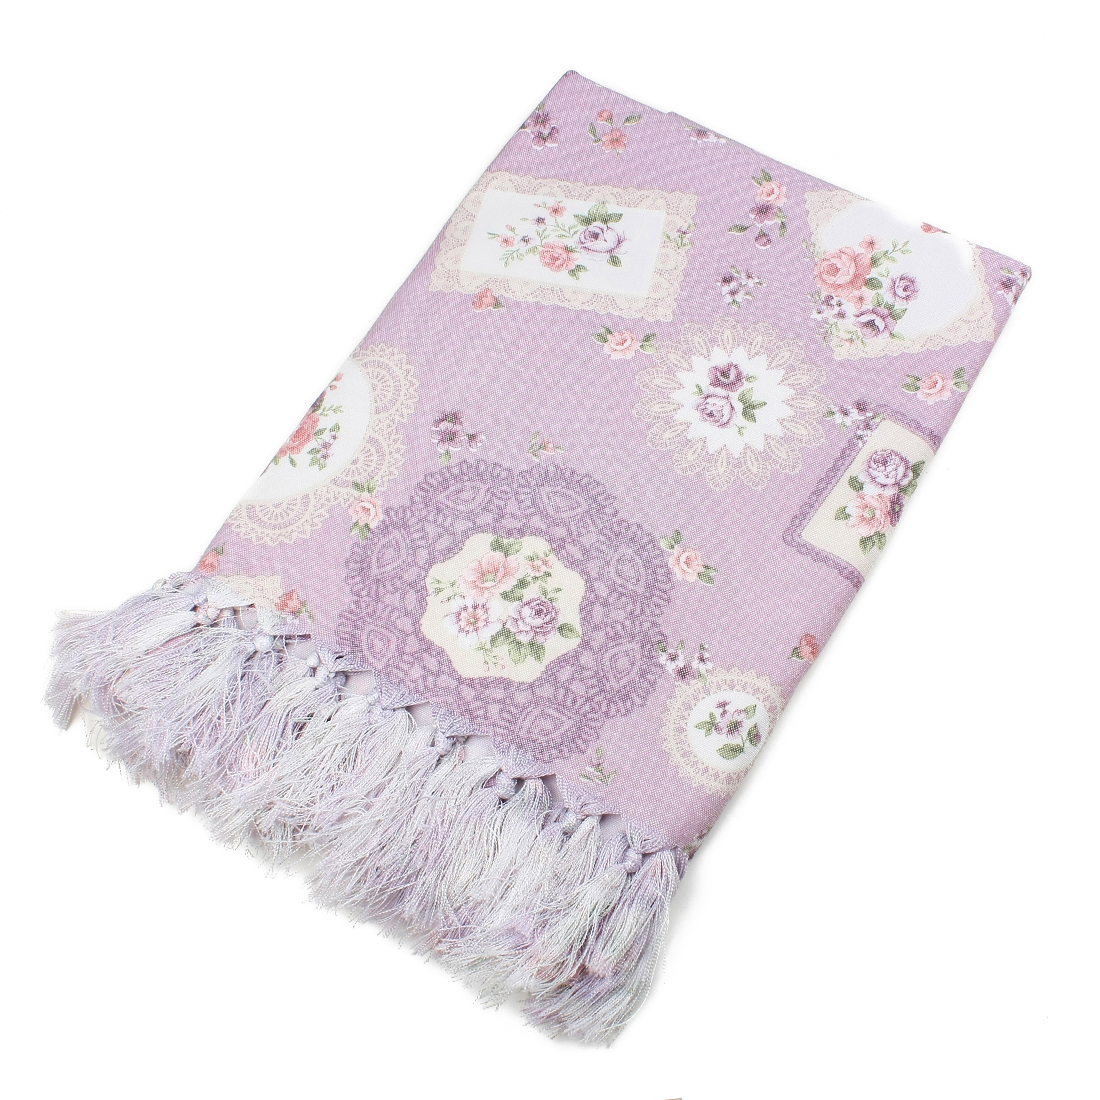 Household Floral Tablecloth 135 x 220cm Light Purple